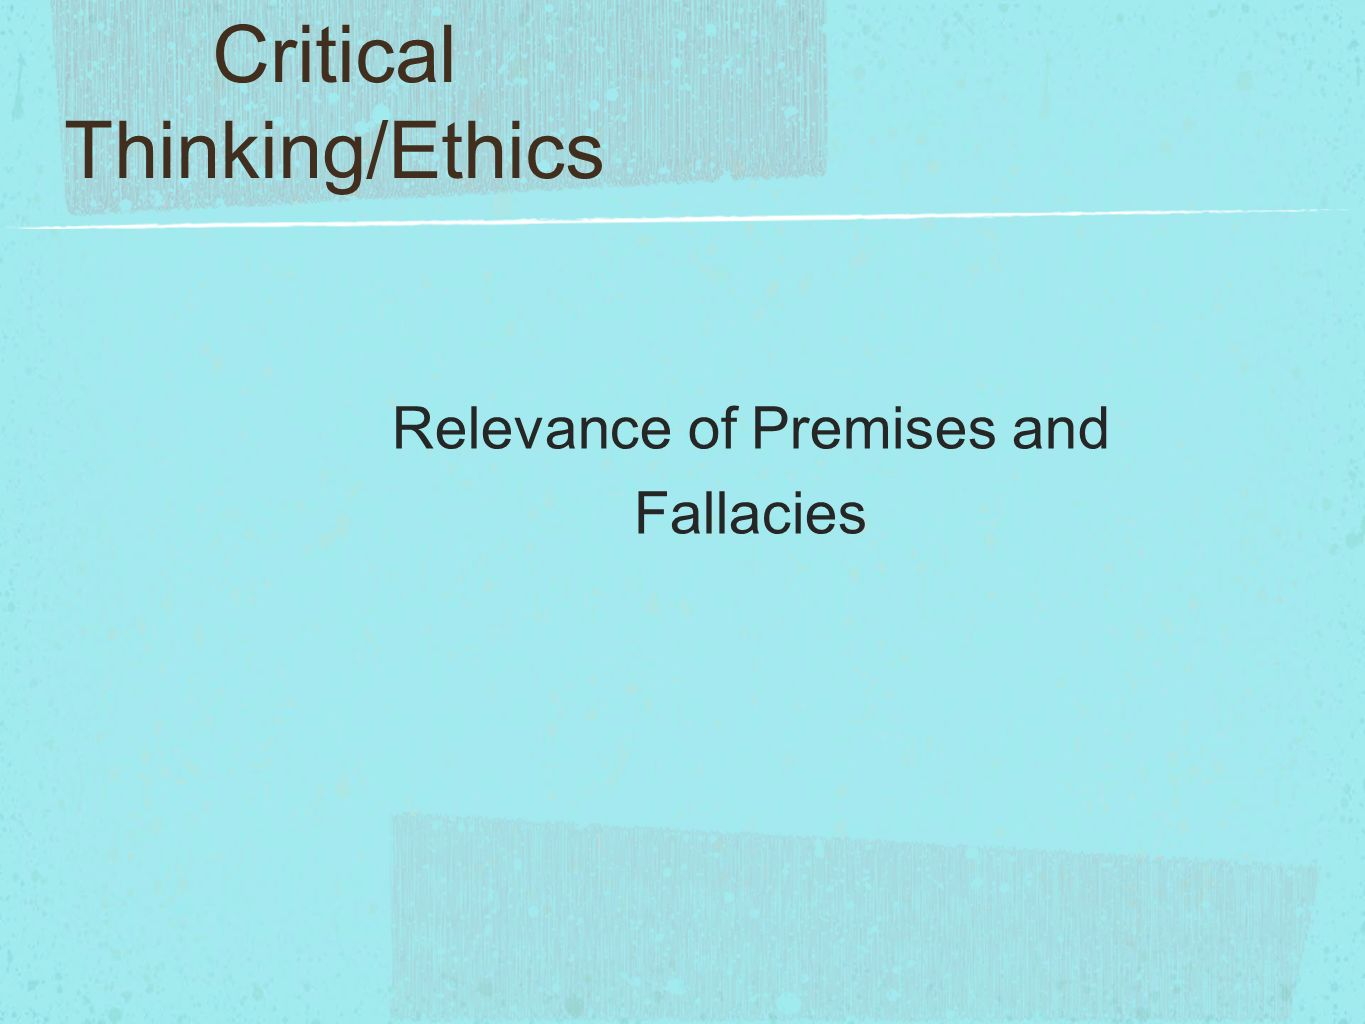 critical thinking model ethics Critical thinking sometimes involves the formation of ethical codes these kinds of critical thinking exercises were handed down to me from my own elementary school teachers they challenged my ethical programming and have stuck with me as central tenets in my moral code.